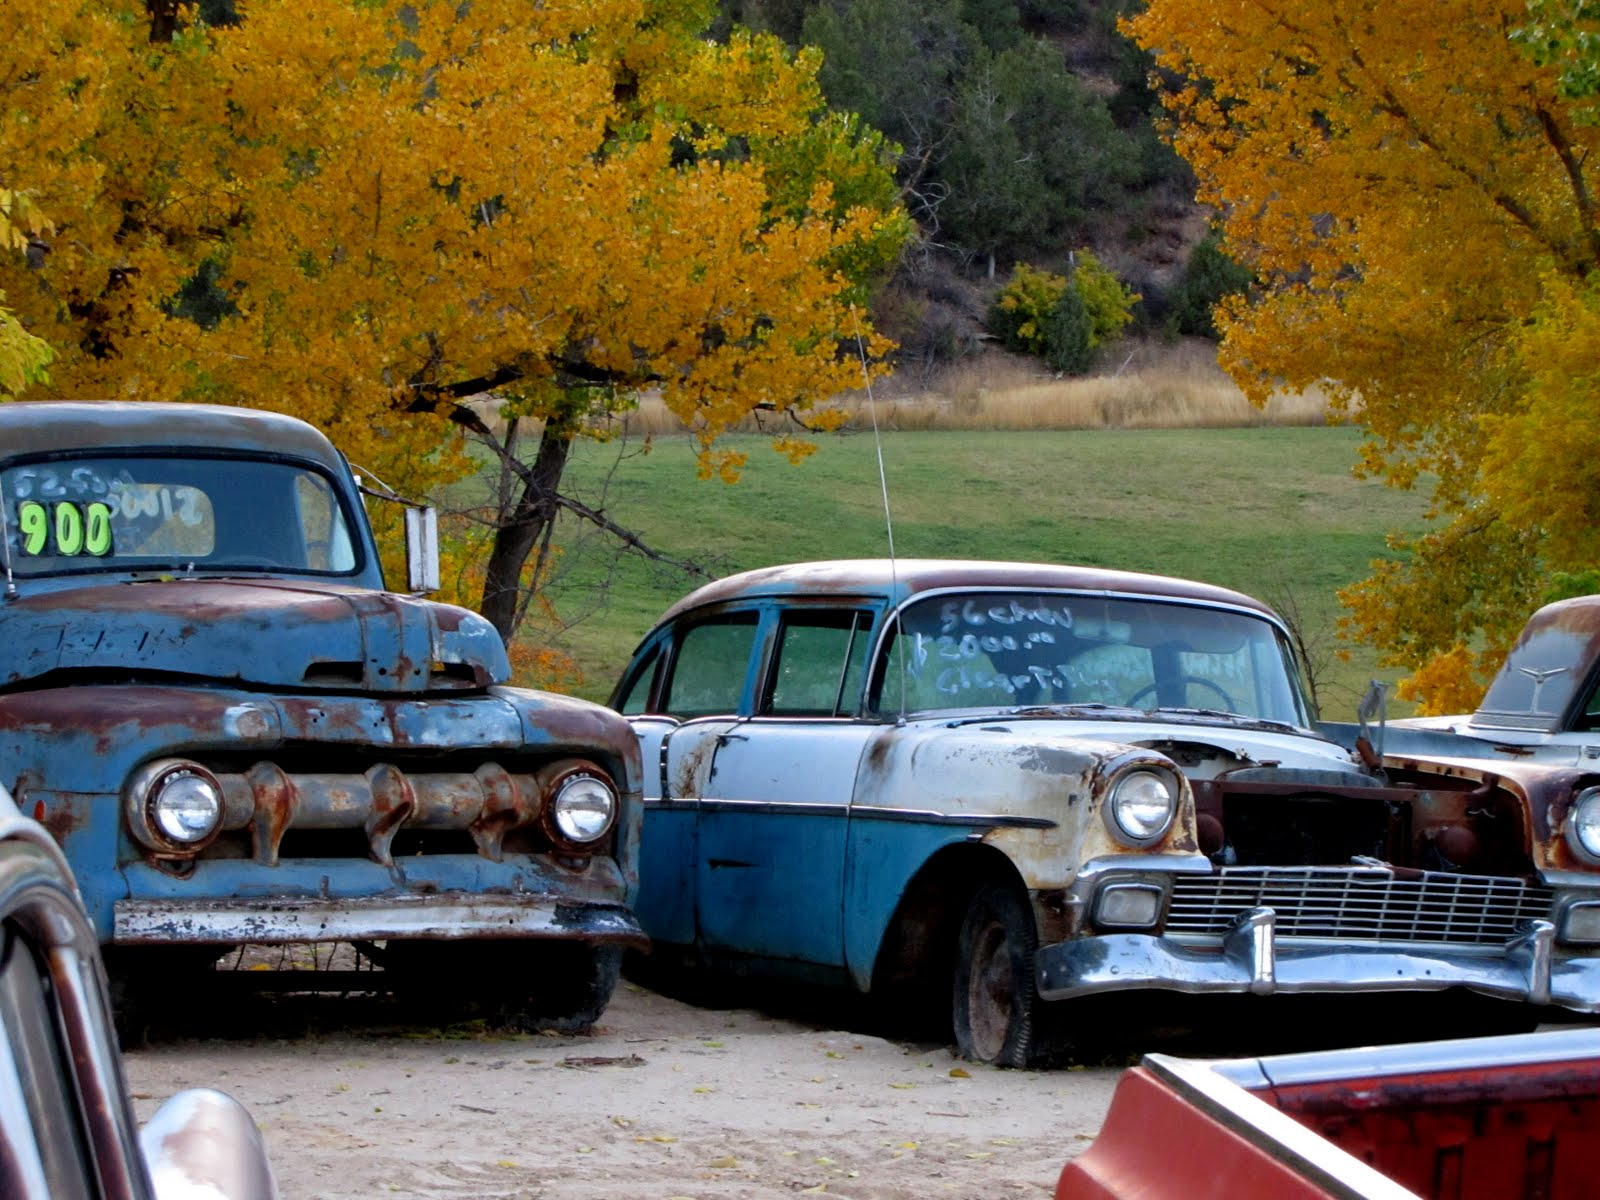 1952 Ford F10, 1956 Chevrolet Bel Air